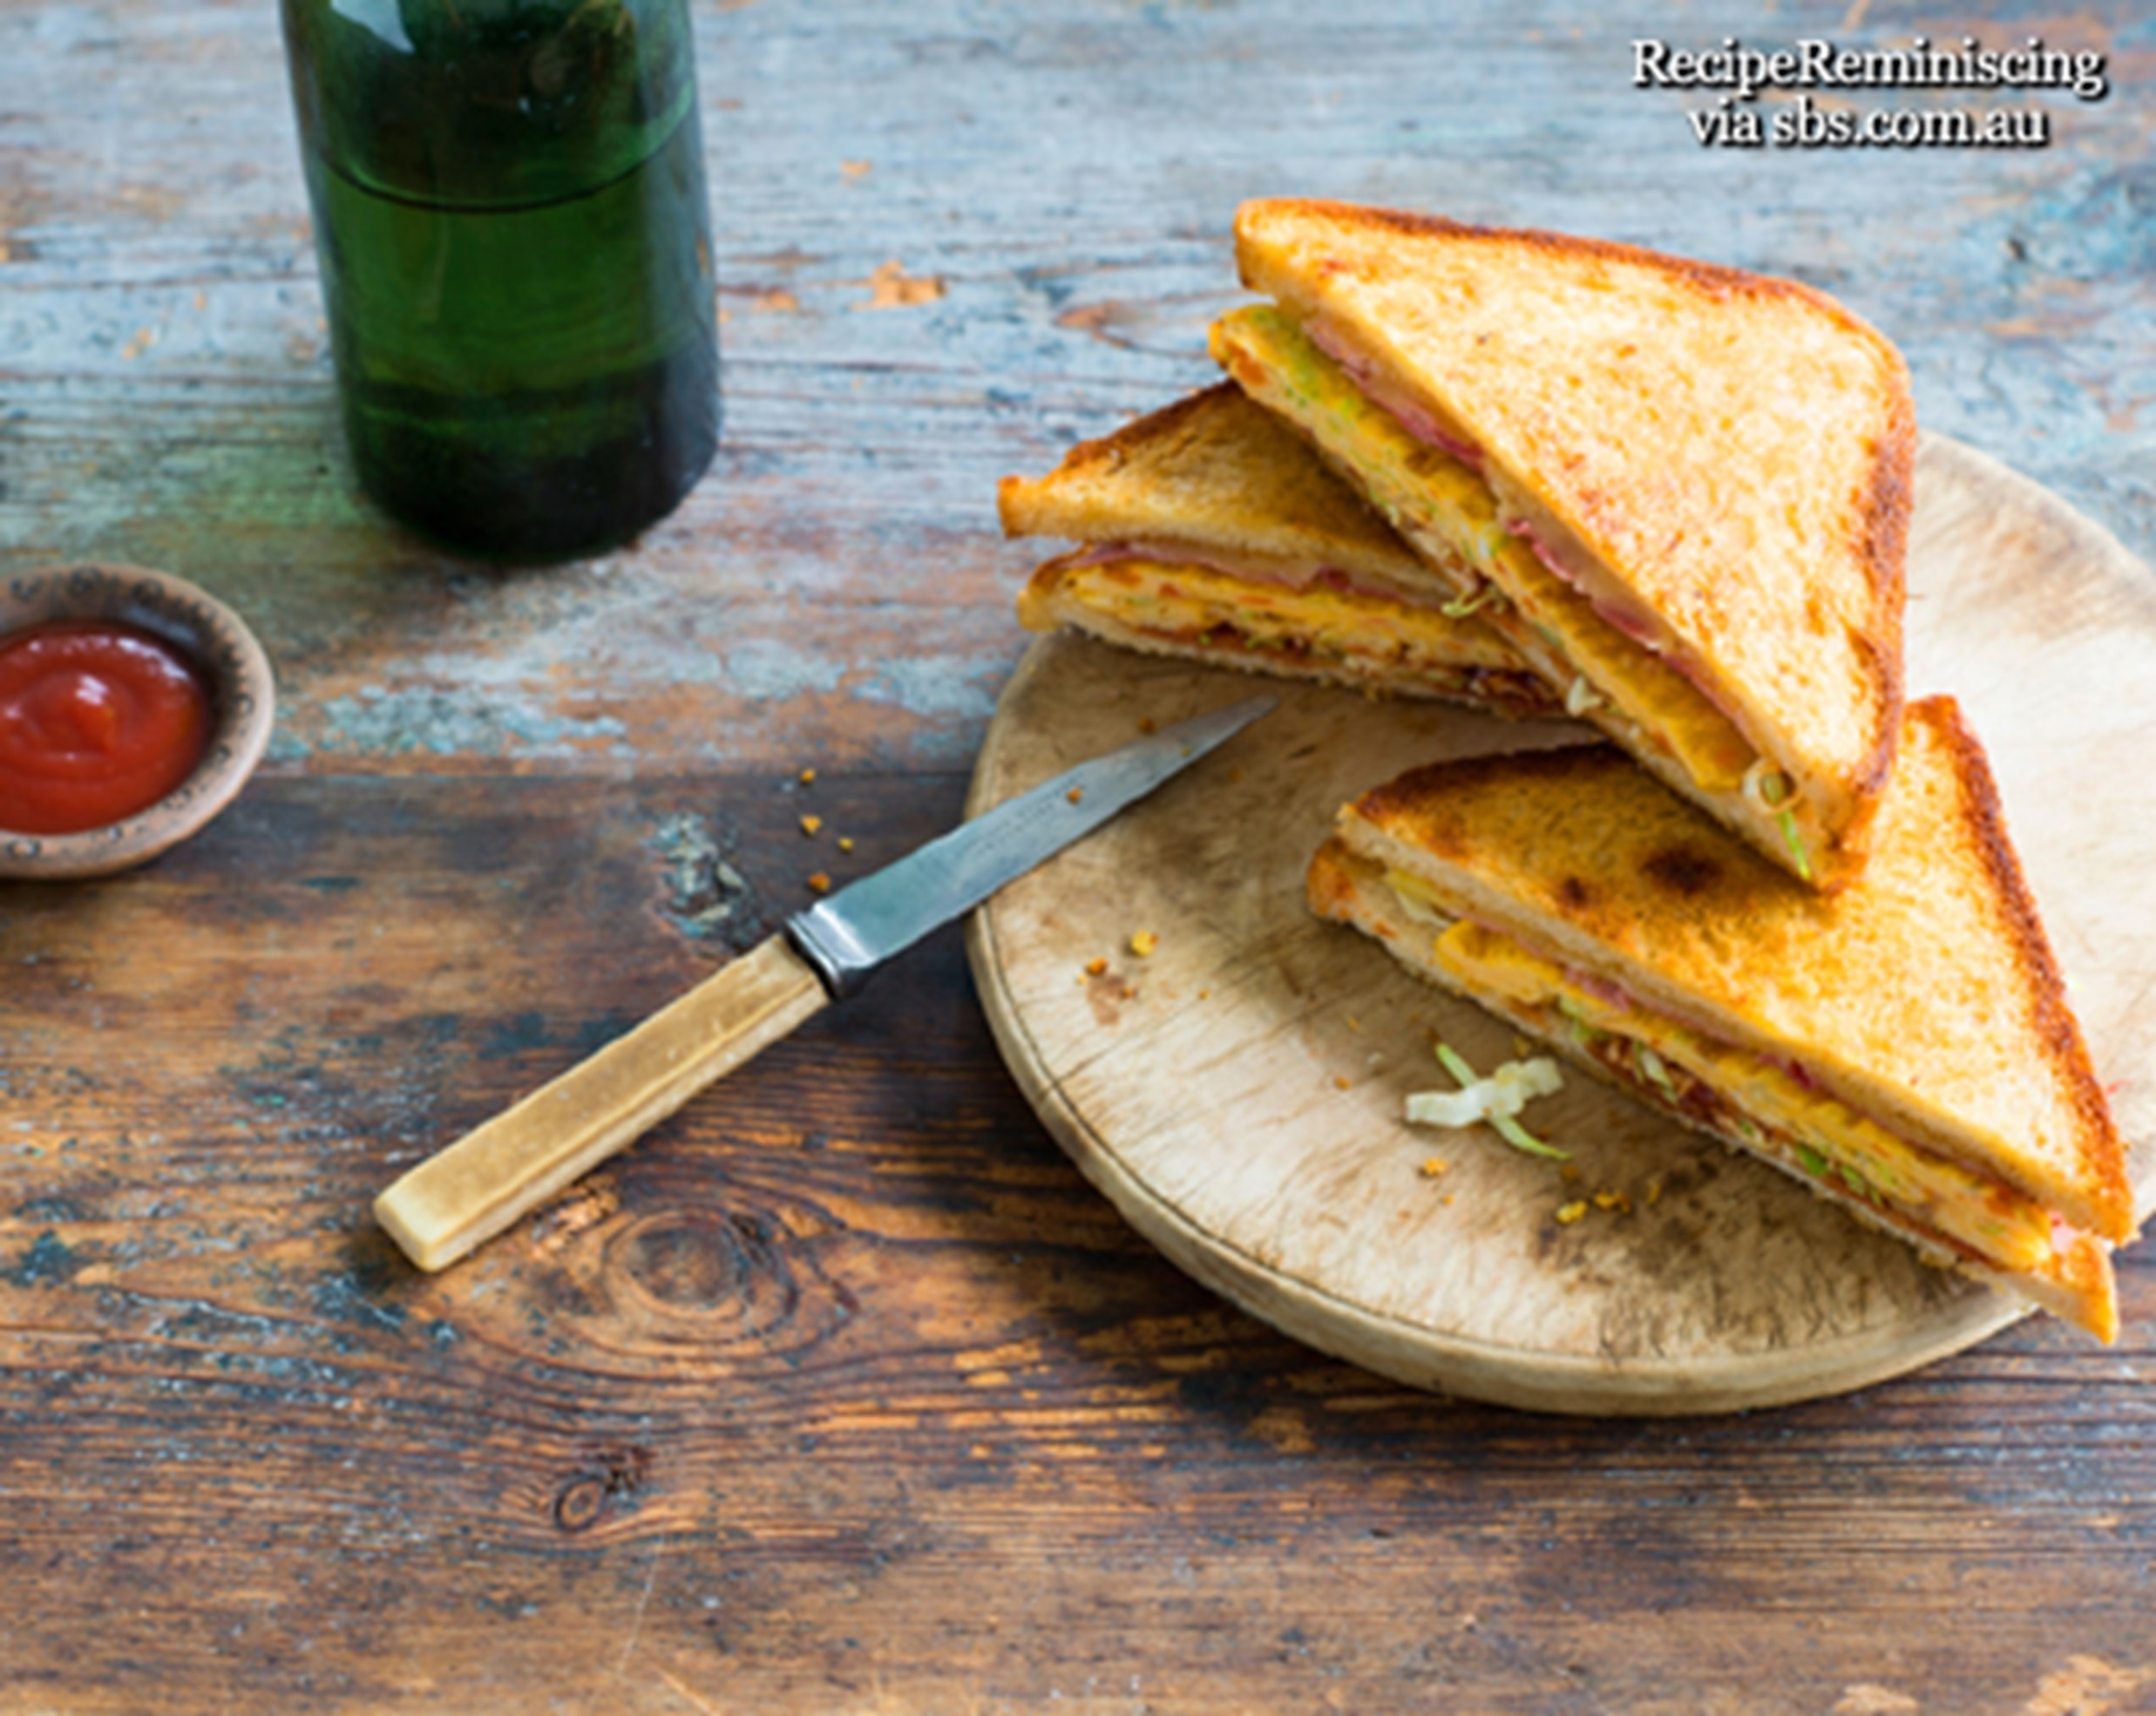 Korean egg toast (gaeran to su tu)_sbs-com-au_page_thumb[2]_thumb